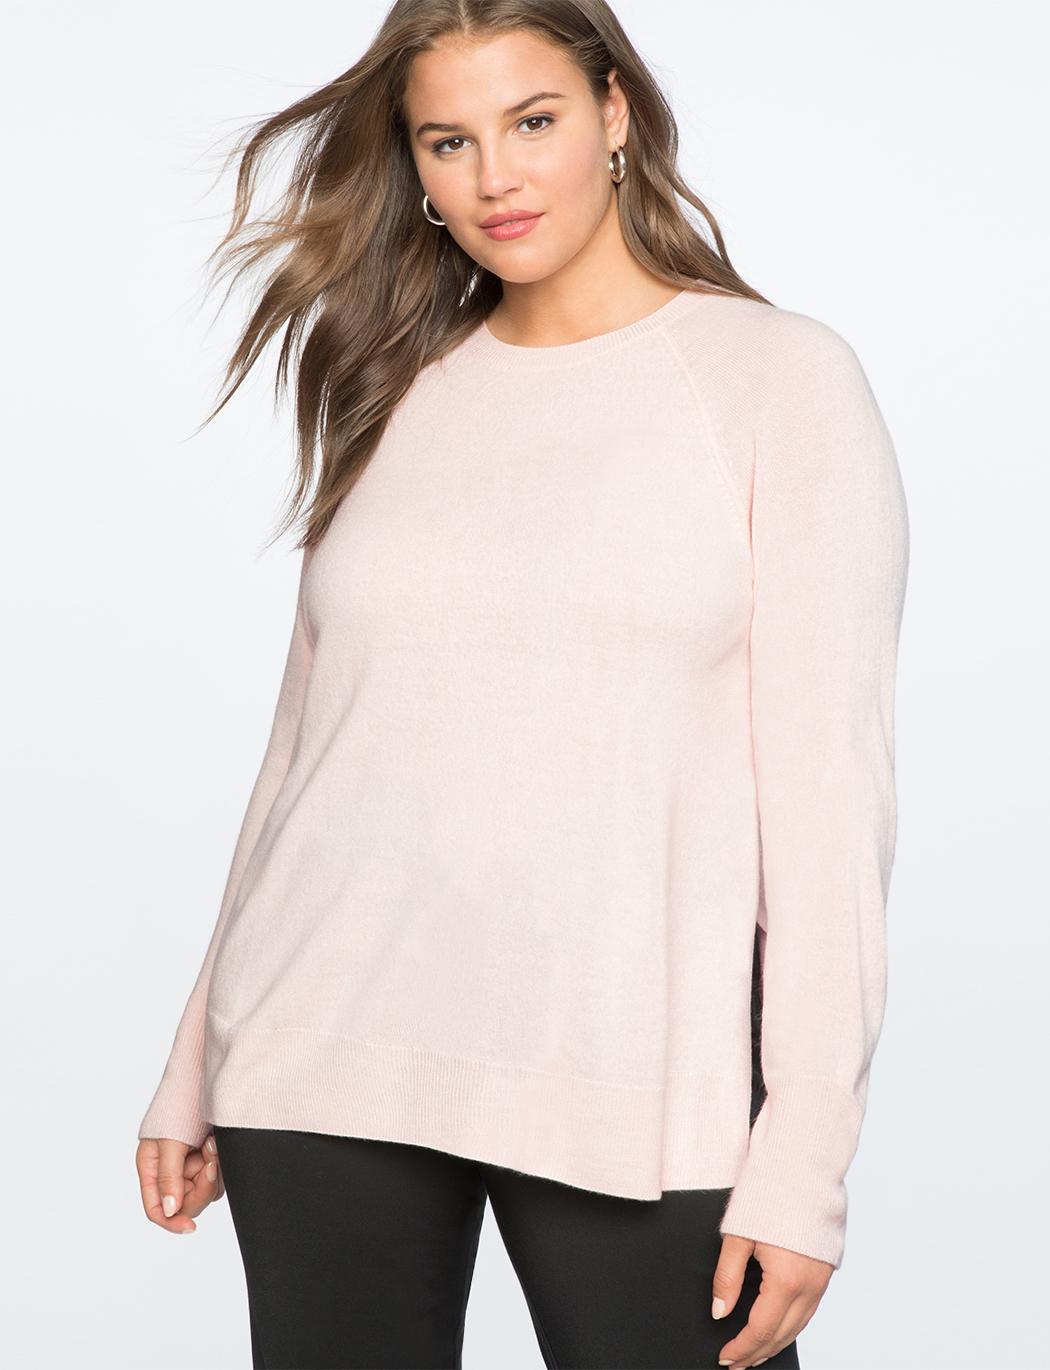 Premier Cashmere Pullover Sweater Womens Plus Size Tops Eloquii